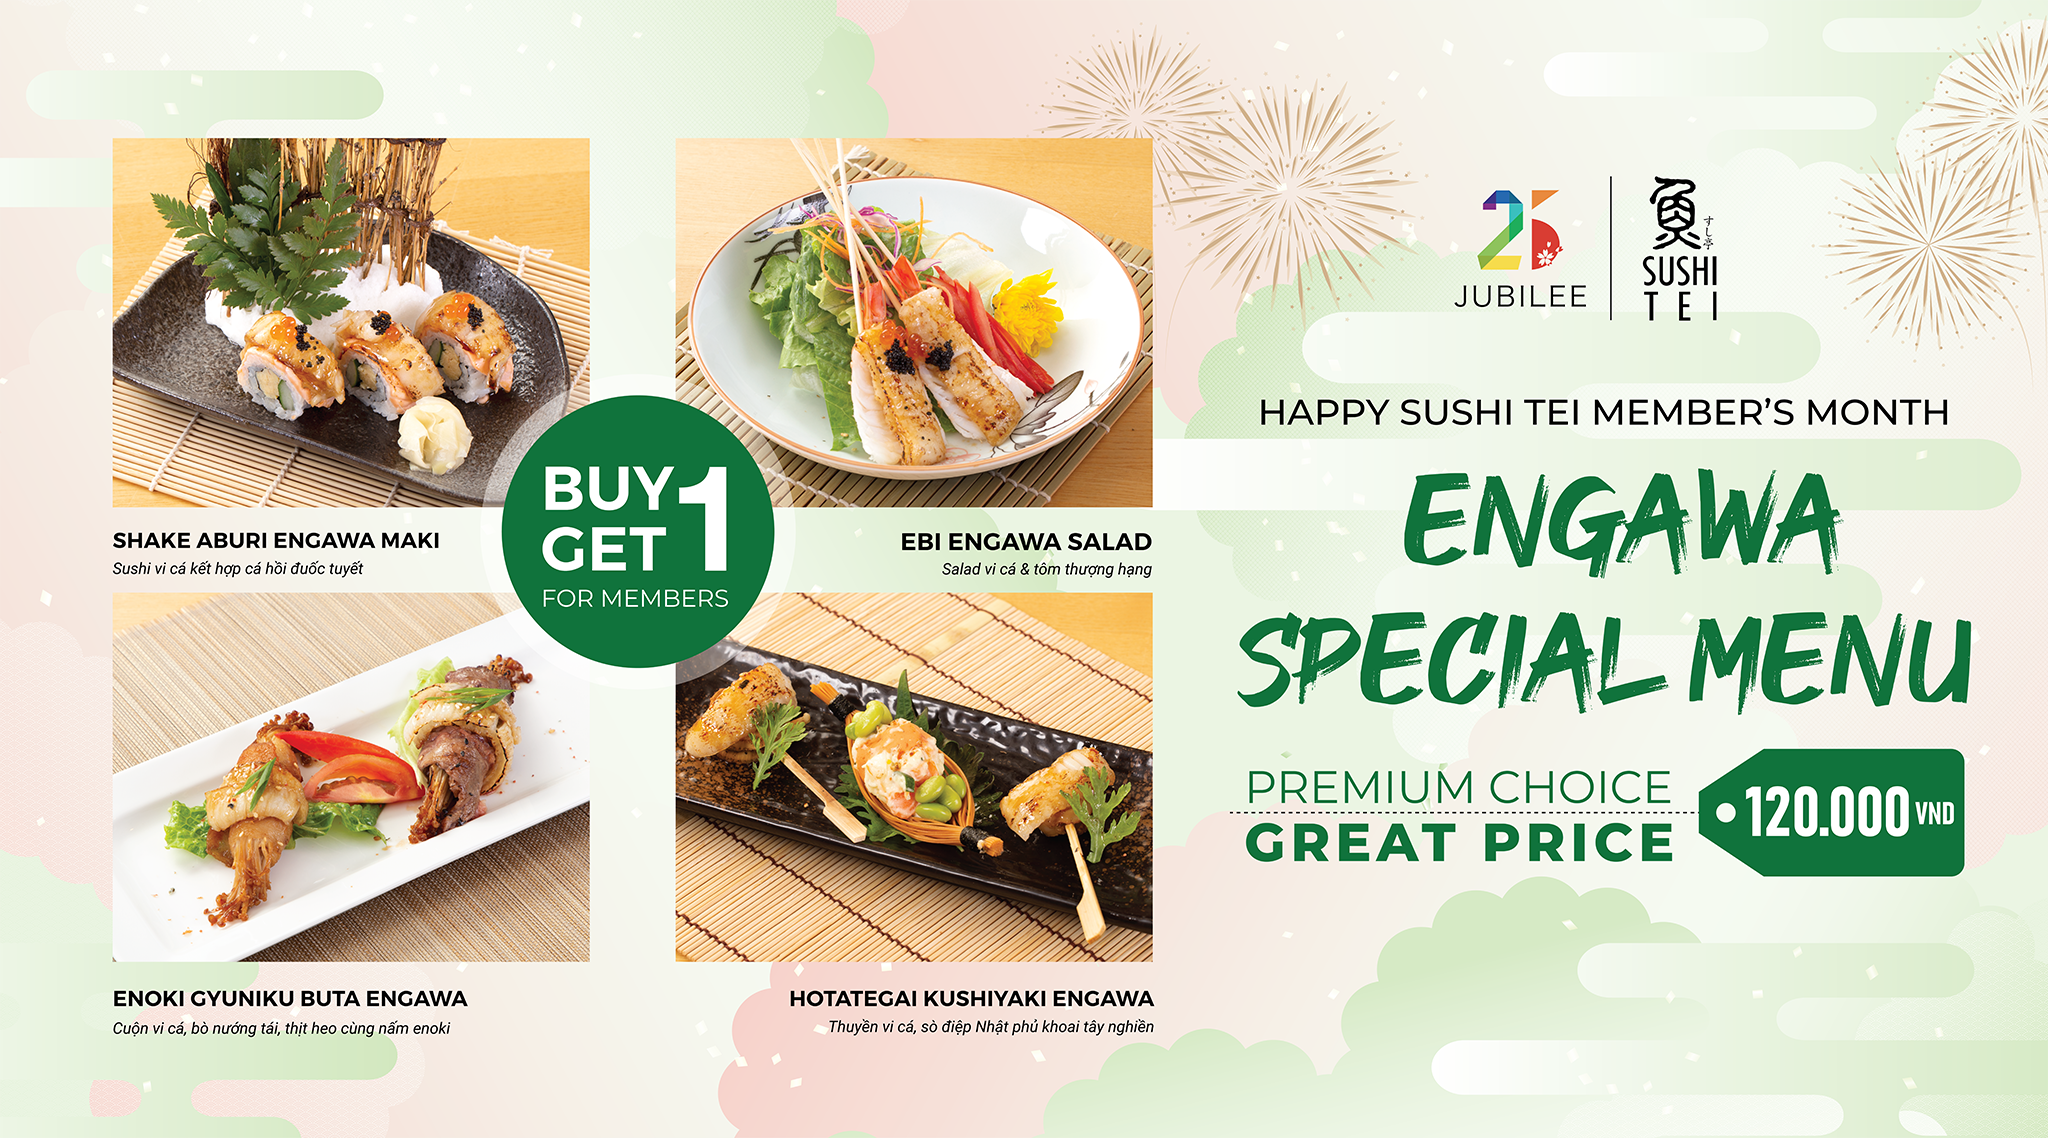 [25 JUBILEE EVENT] ENGAWA SPECIAL MENU FOR MEMBERS